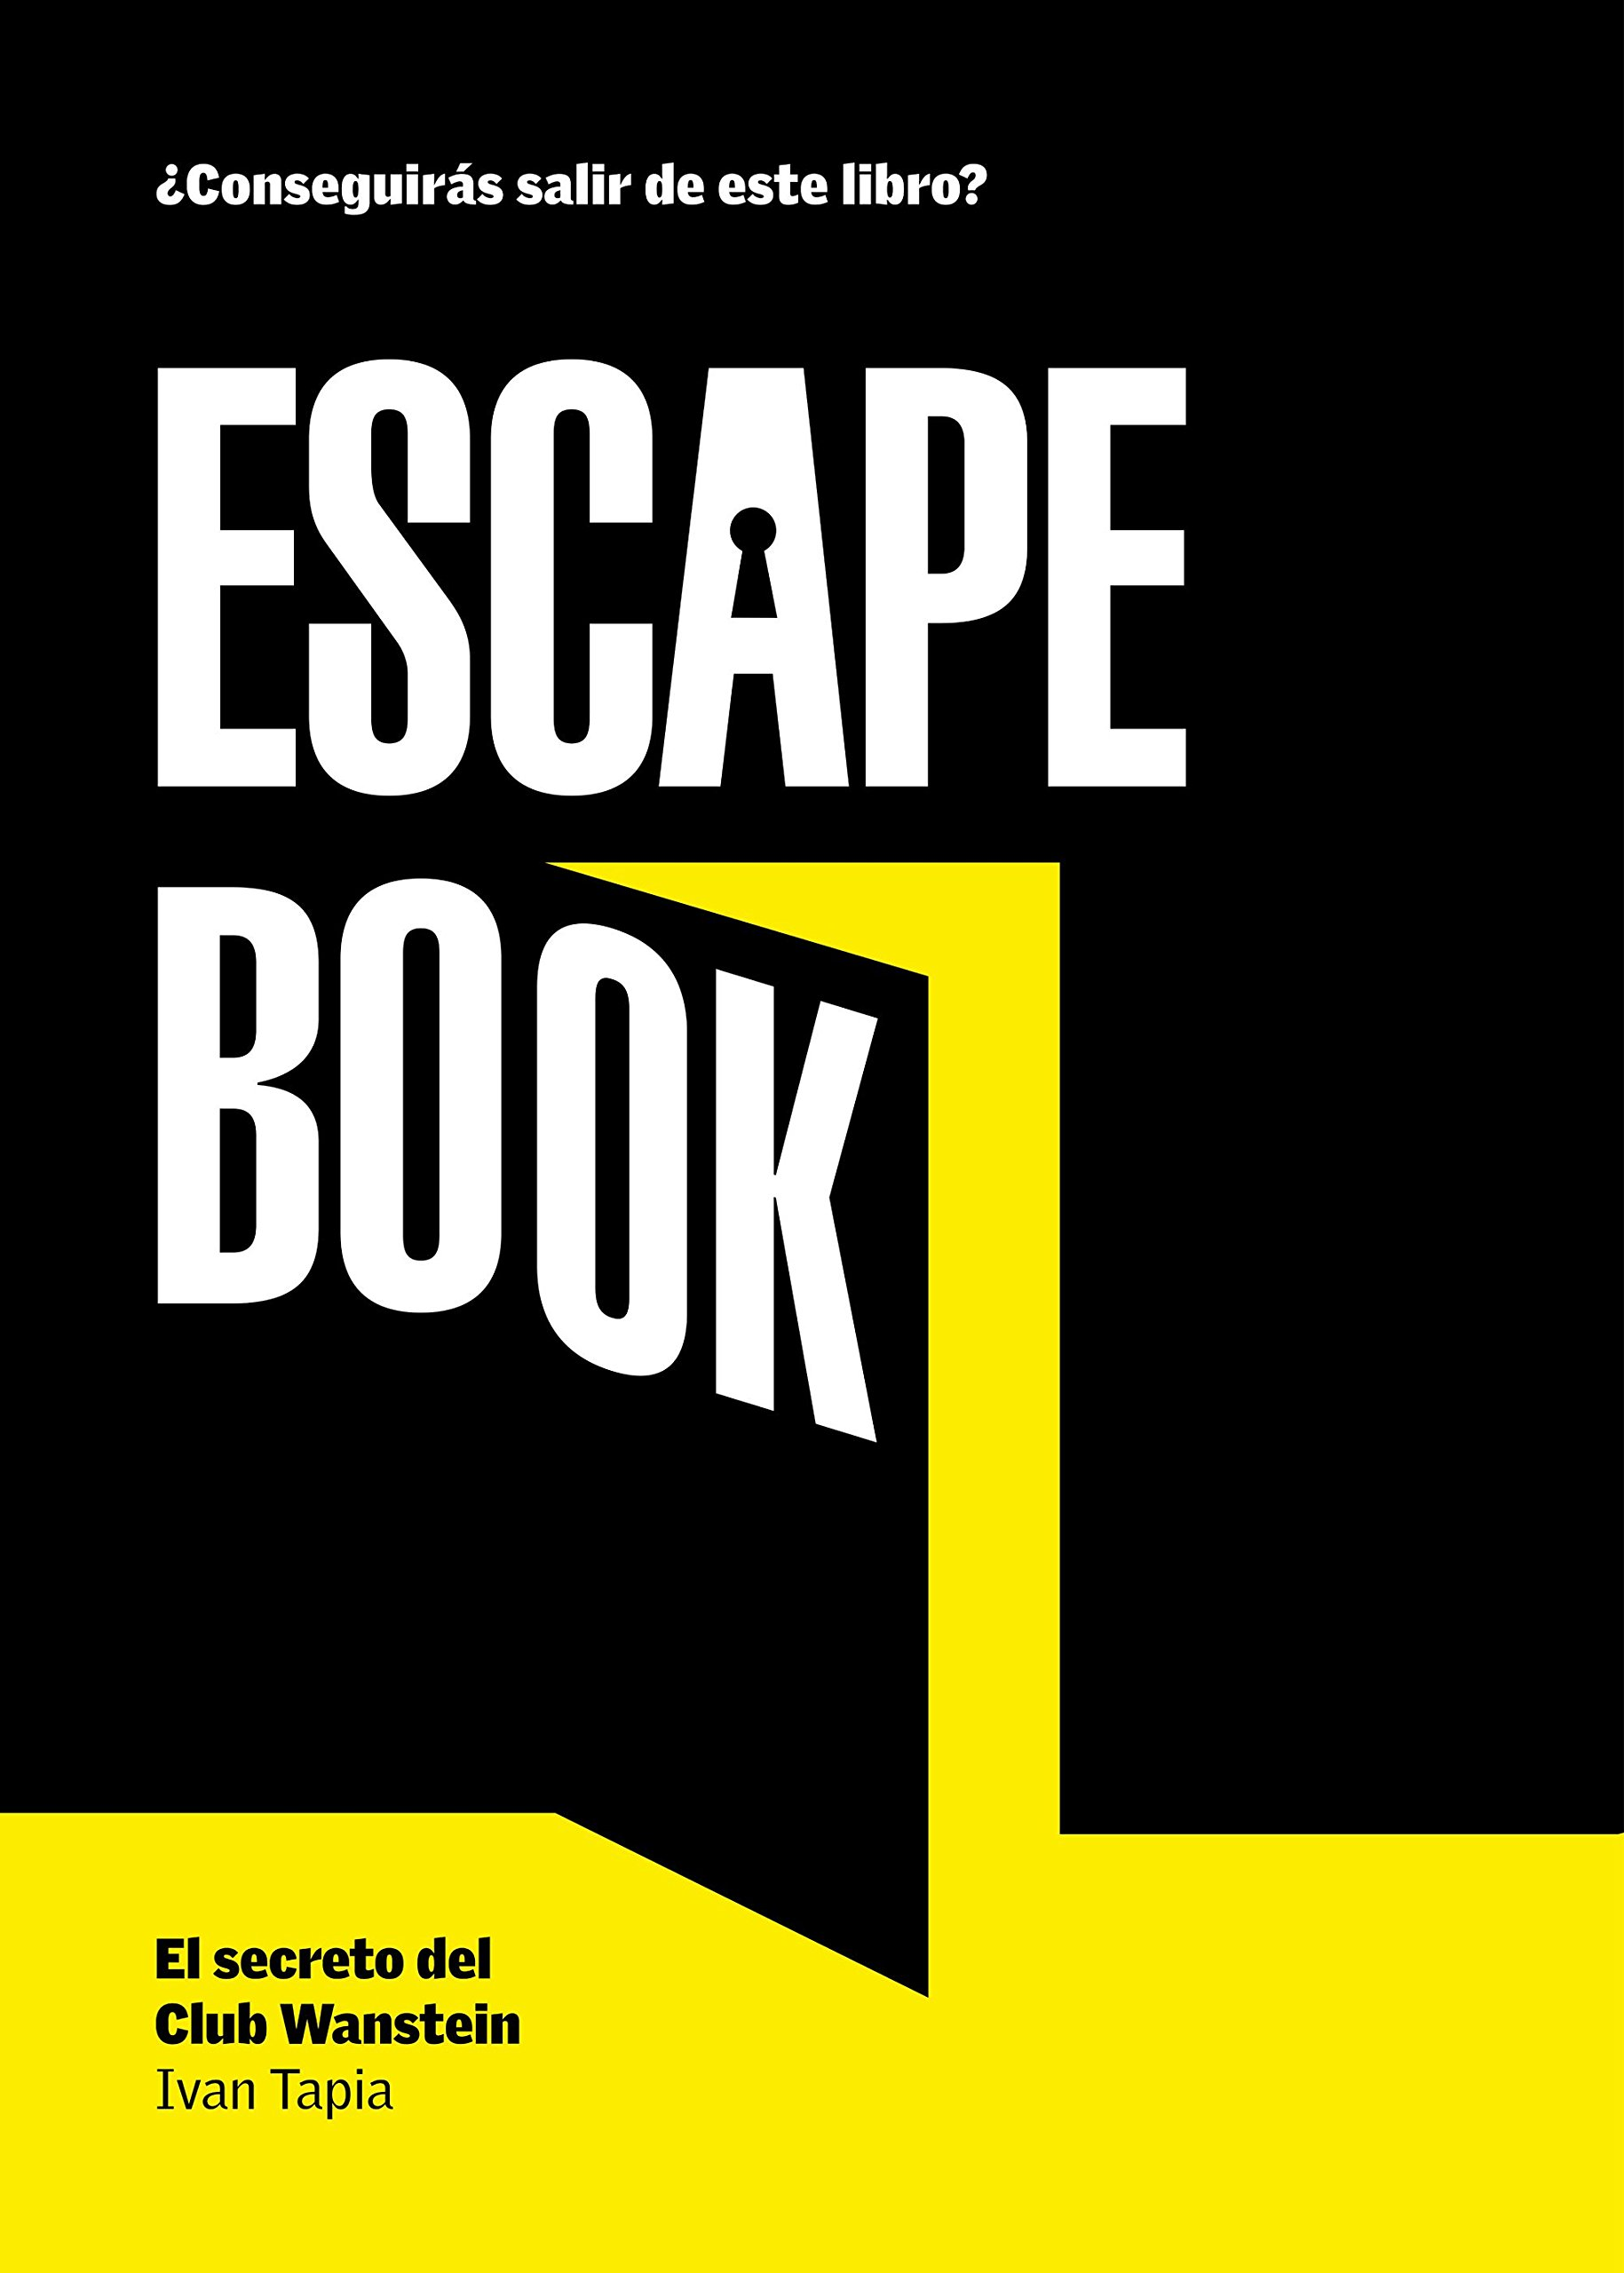 Escape book: El secreto del Club Wanstein Ocio y deportes: Amazon ...